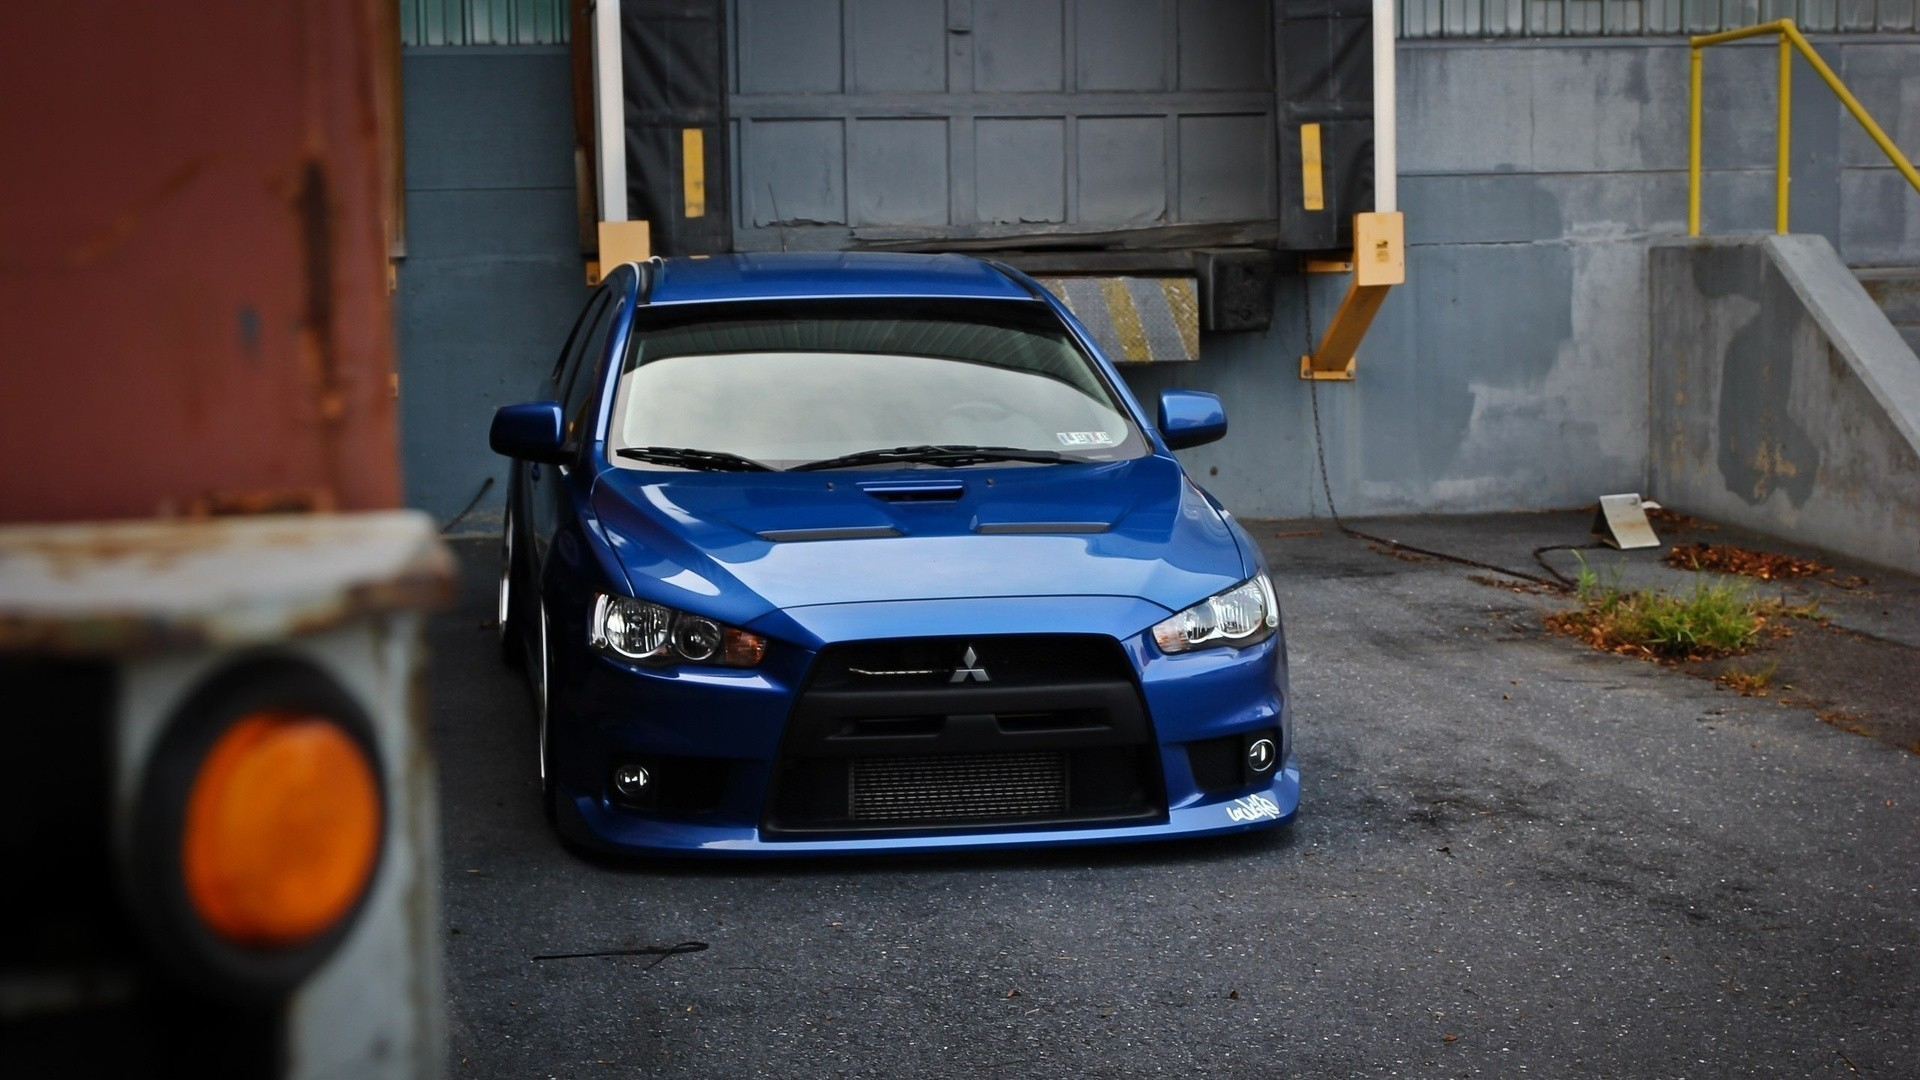 1920x1080 wallpaper cars · Mitsubishi · evo